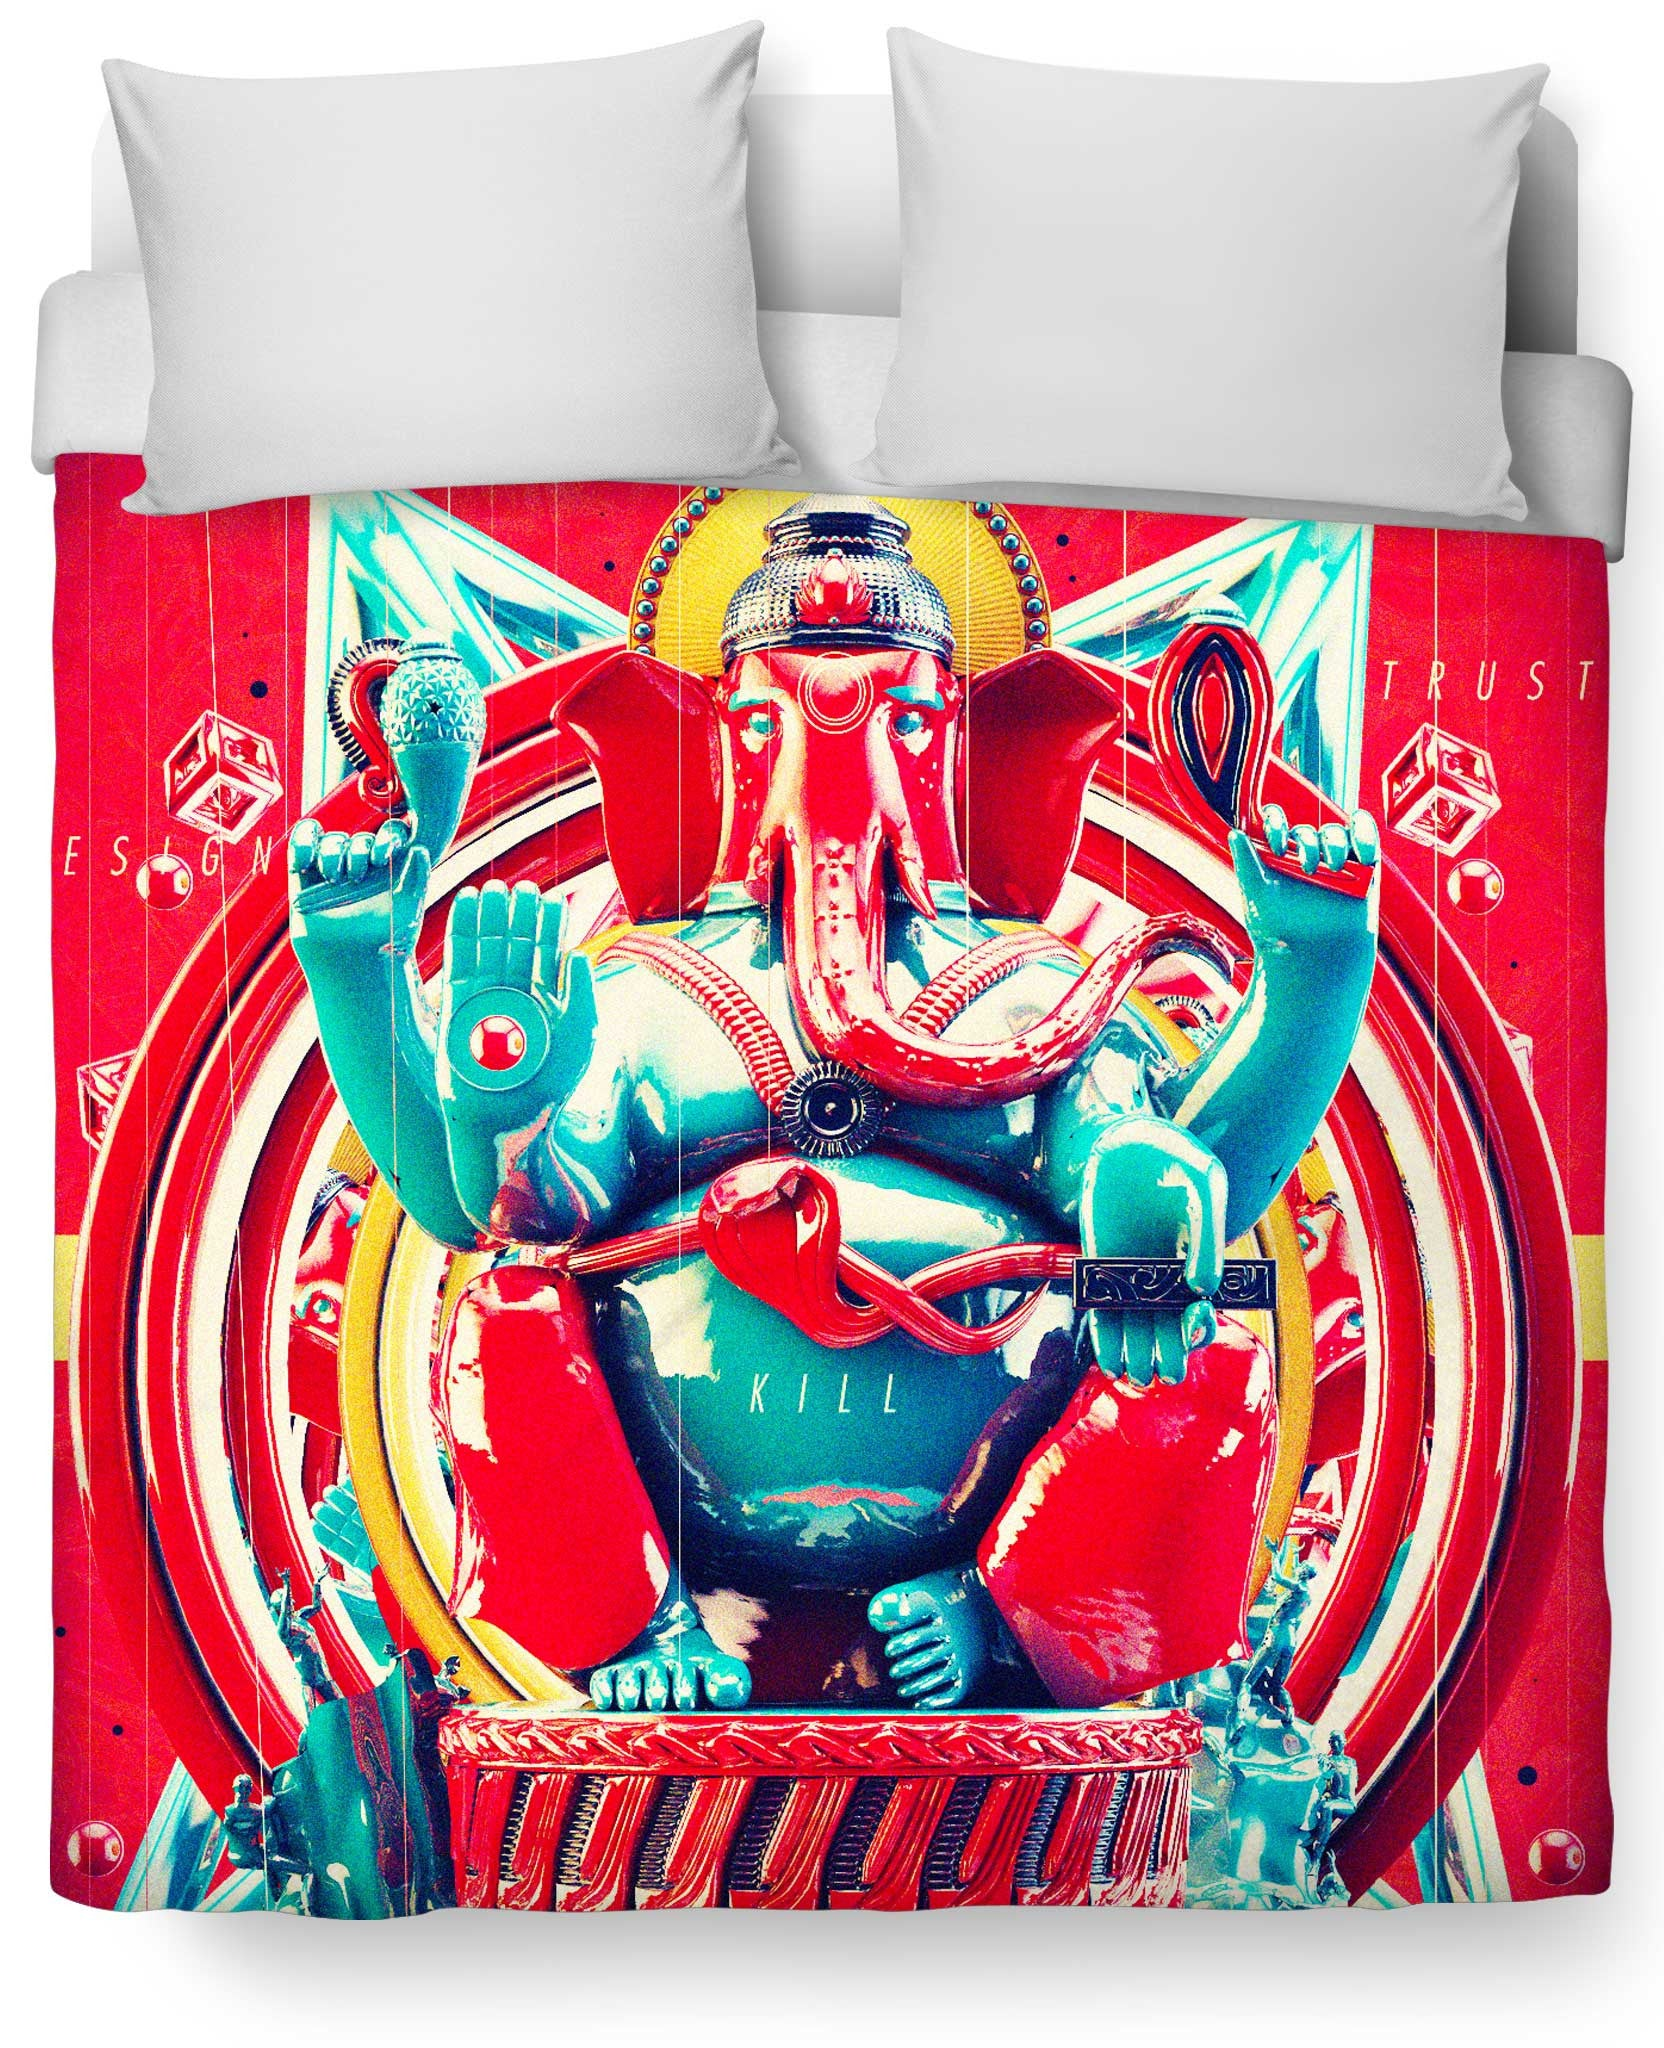 Elephant Kill Duvet Cover